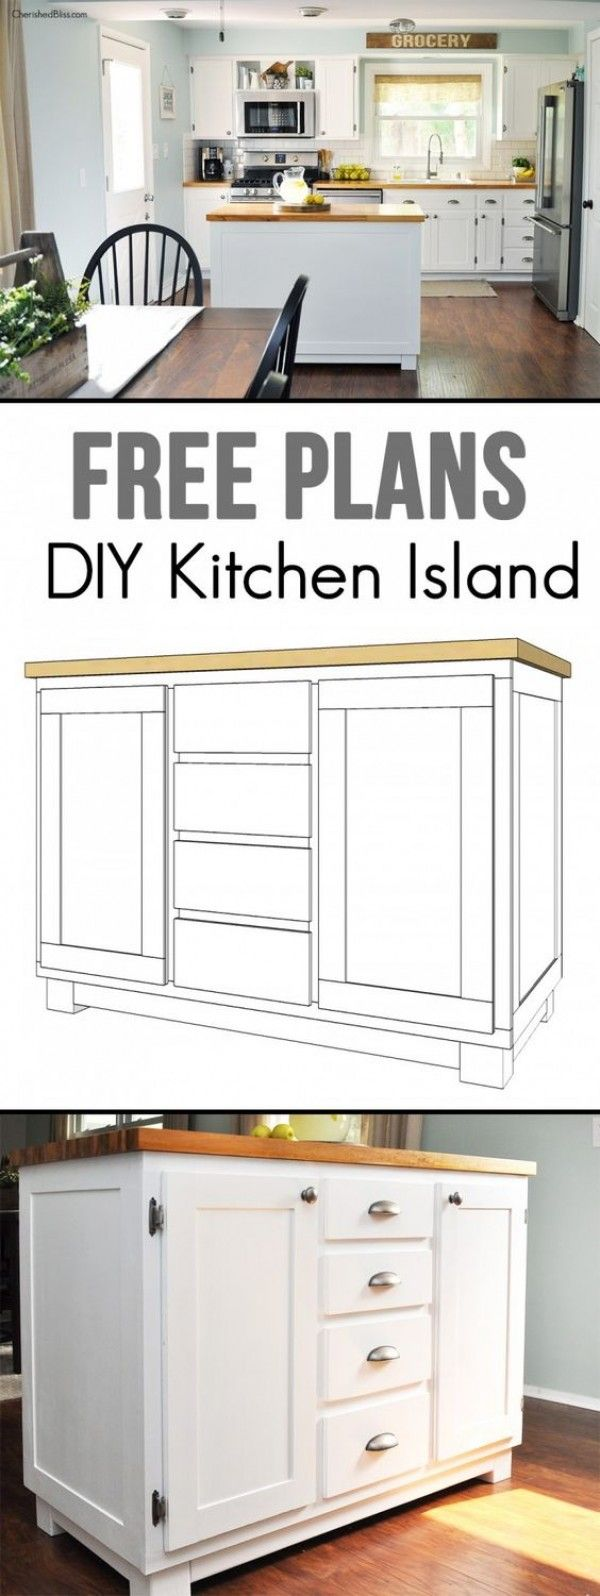 Kitchen island you can eat at - 15 Easy Diy Kitchen Islands That You Can Build Yourself